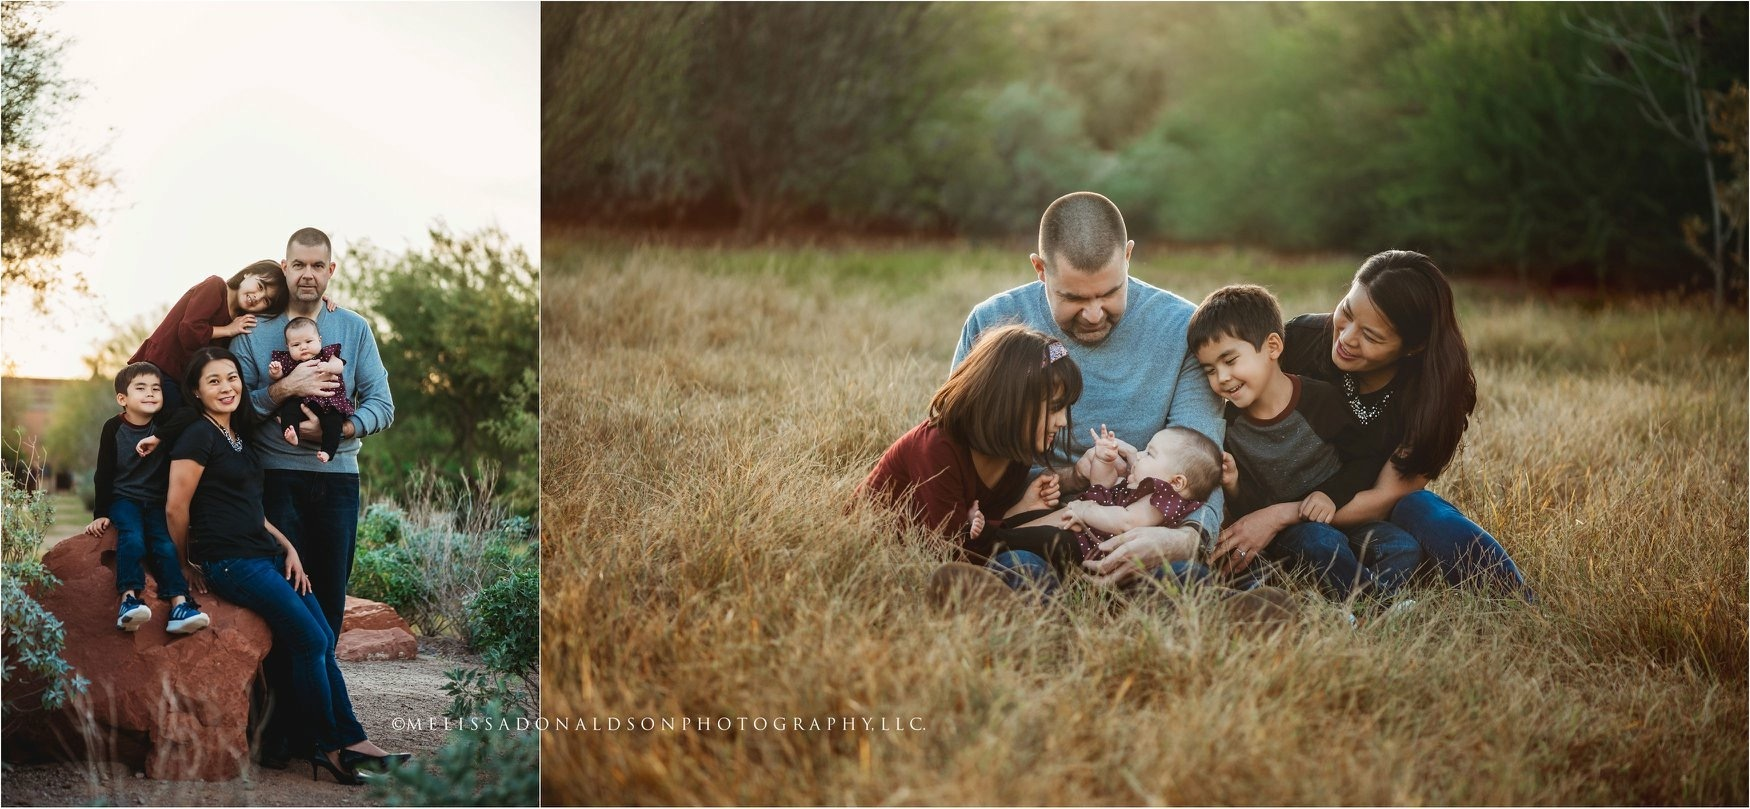 Love this family of five:  by Melissa Tucker-Donaldson